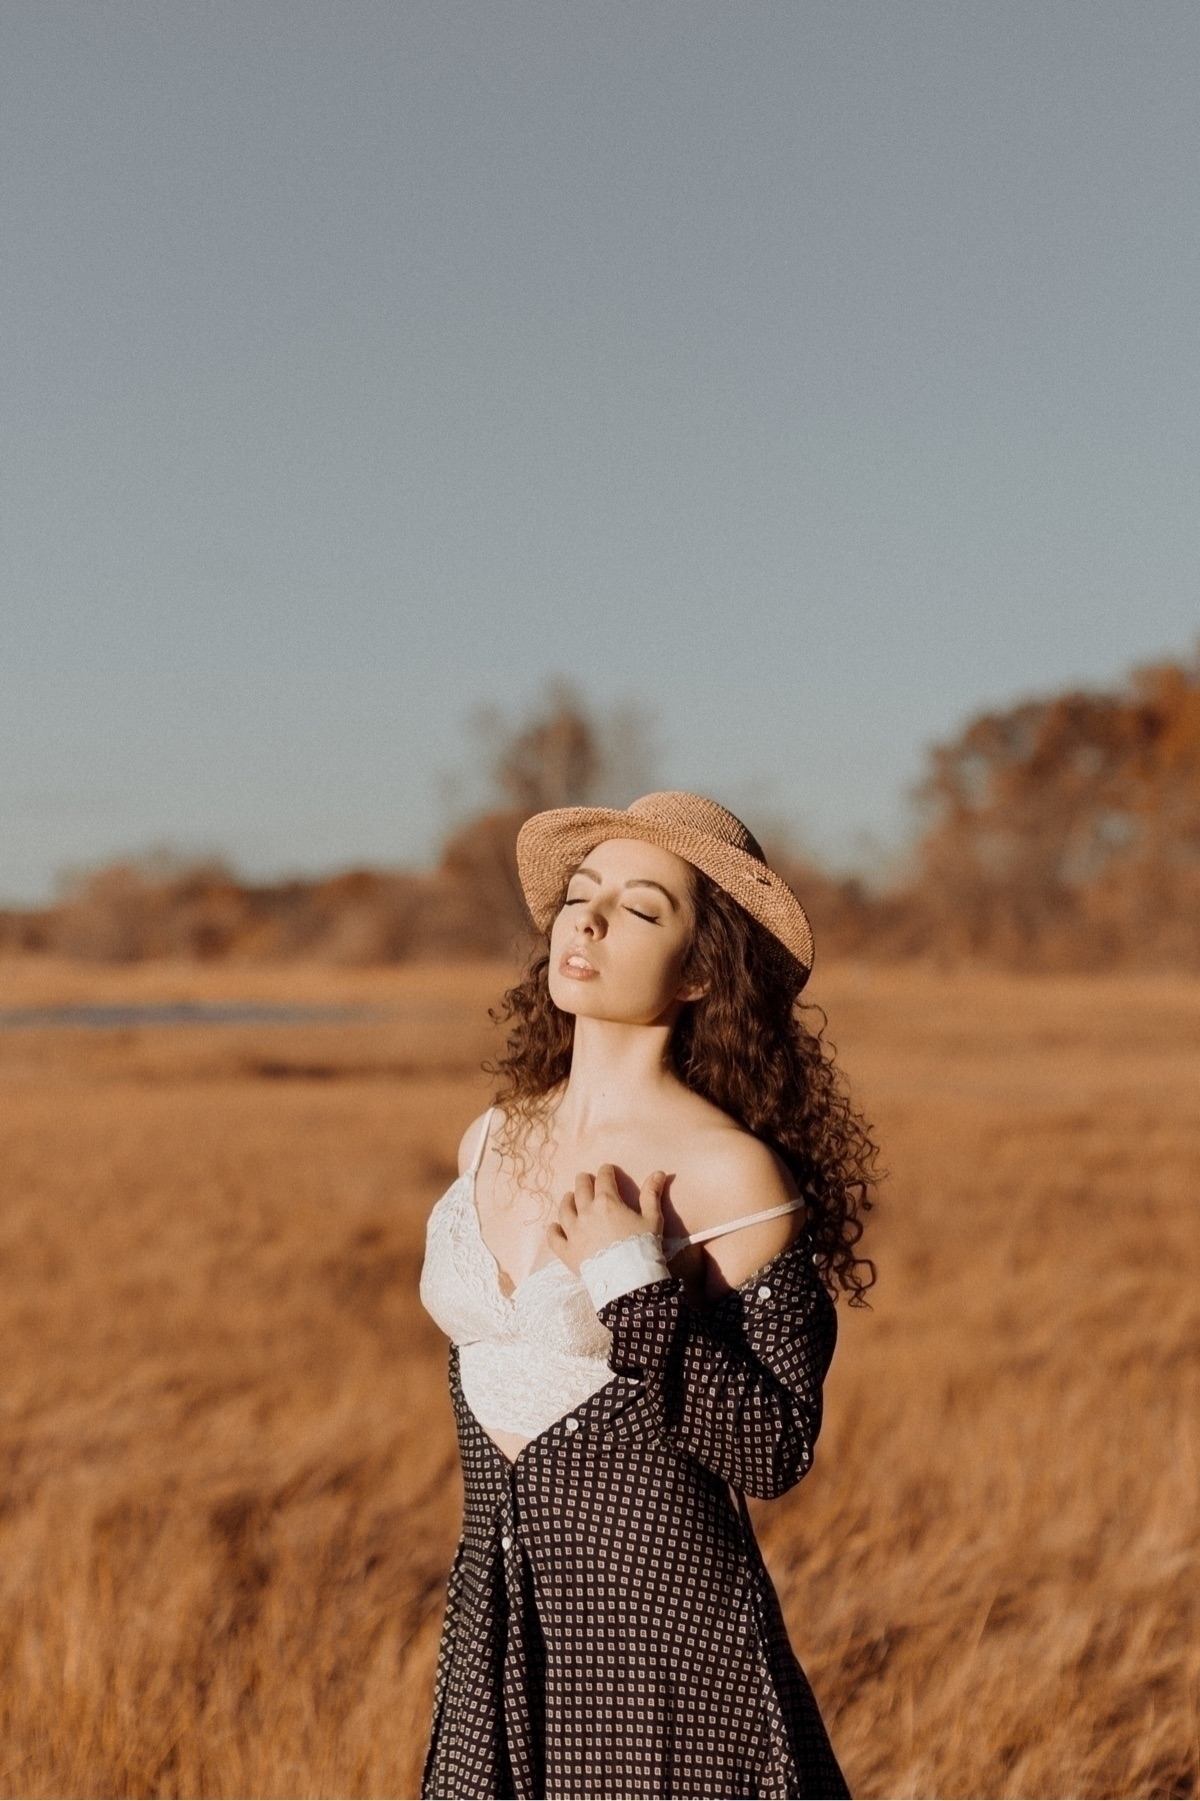 model / patreon - sydneysheaphotography - sydneyshea | ello